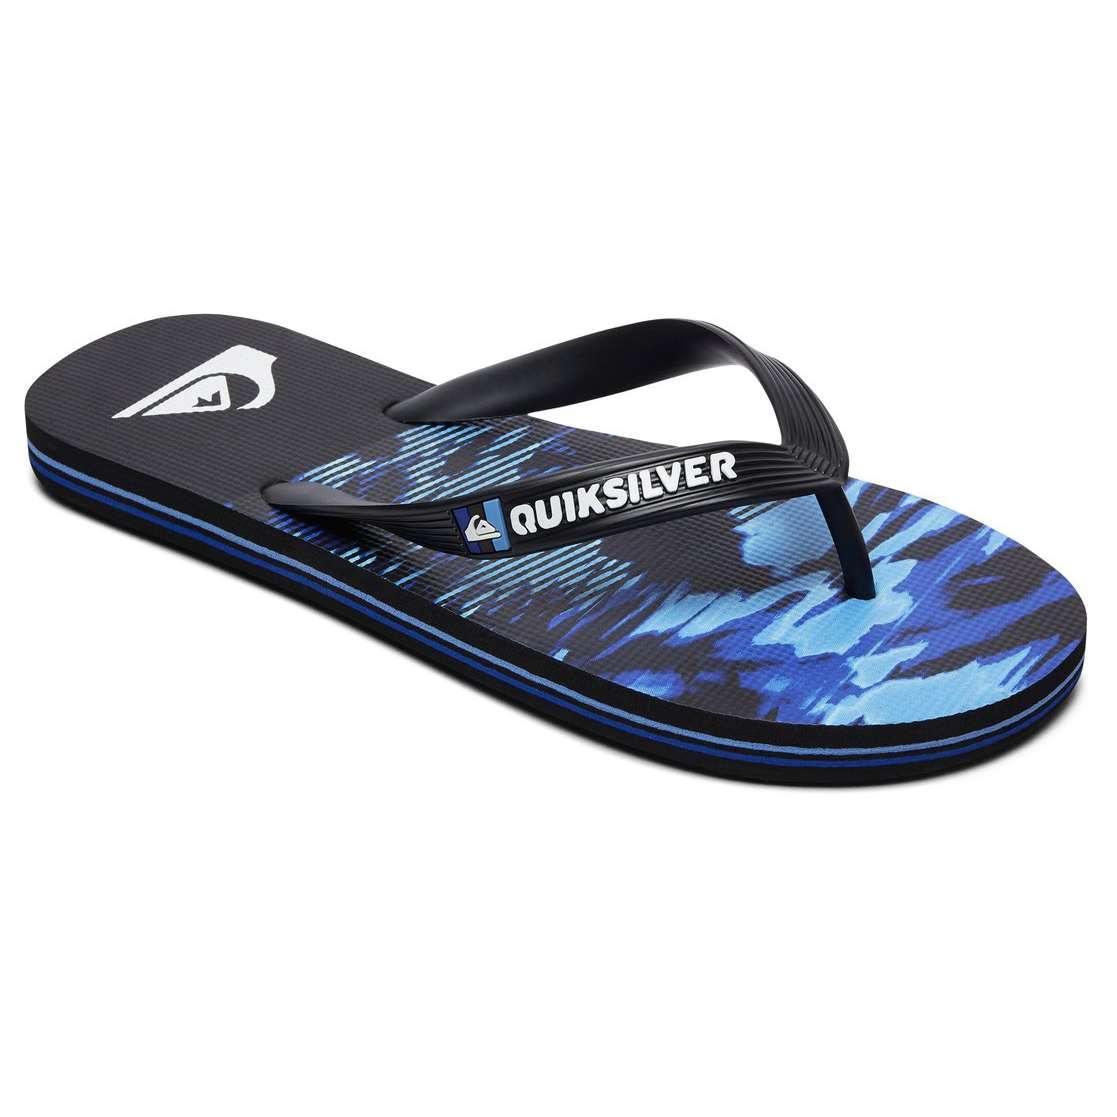 Quiksilver Boys' Molokai Night Marcher Flip-Flops - Black, 4